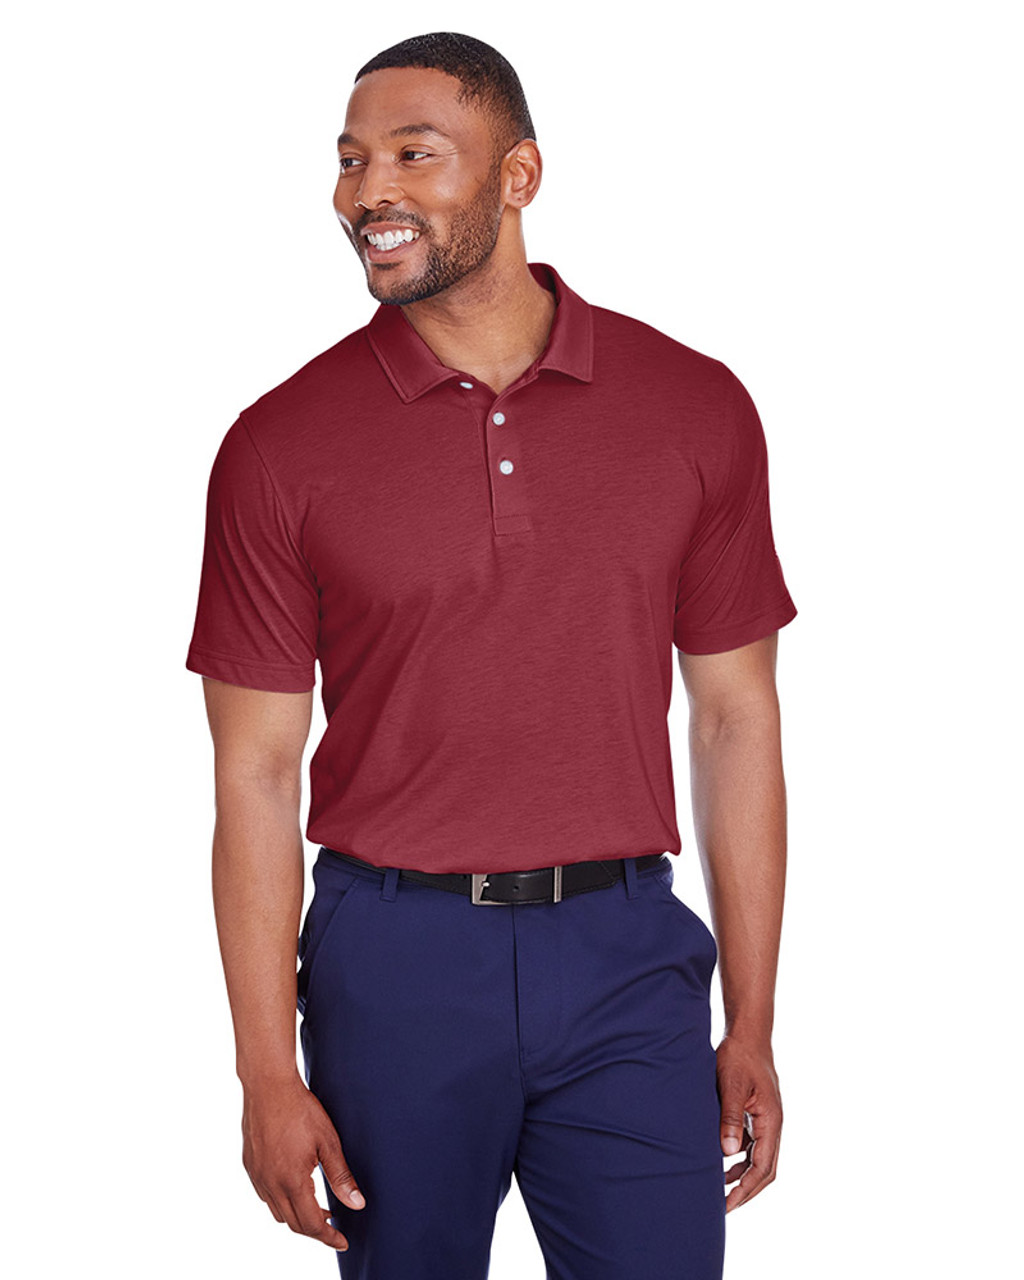 Cabernet - 596920 Puma Golf Men's Fusion Polo | Blankclothing.ca